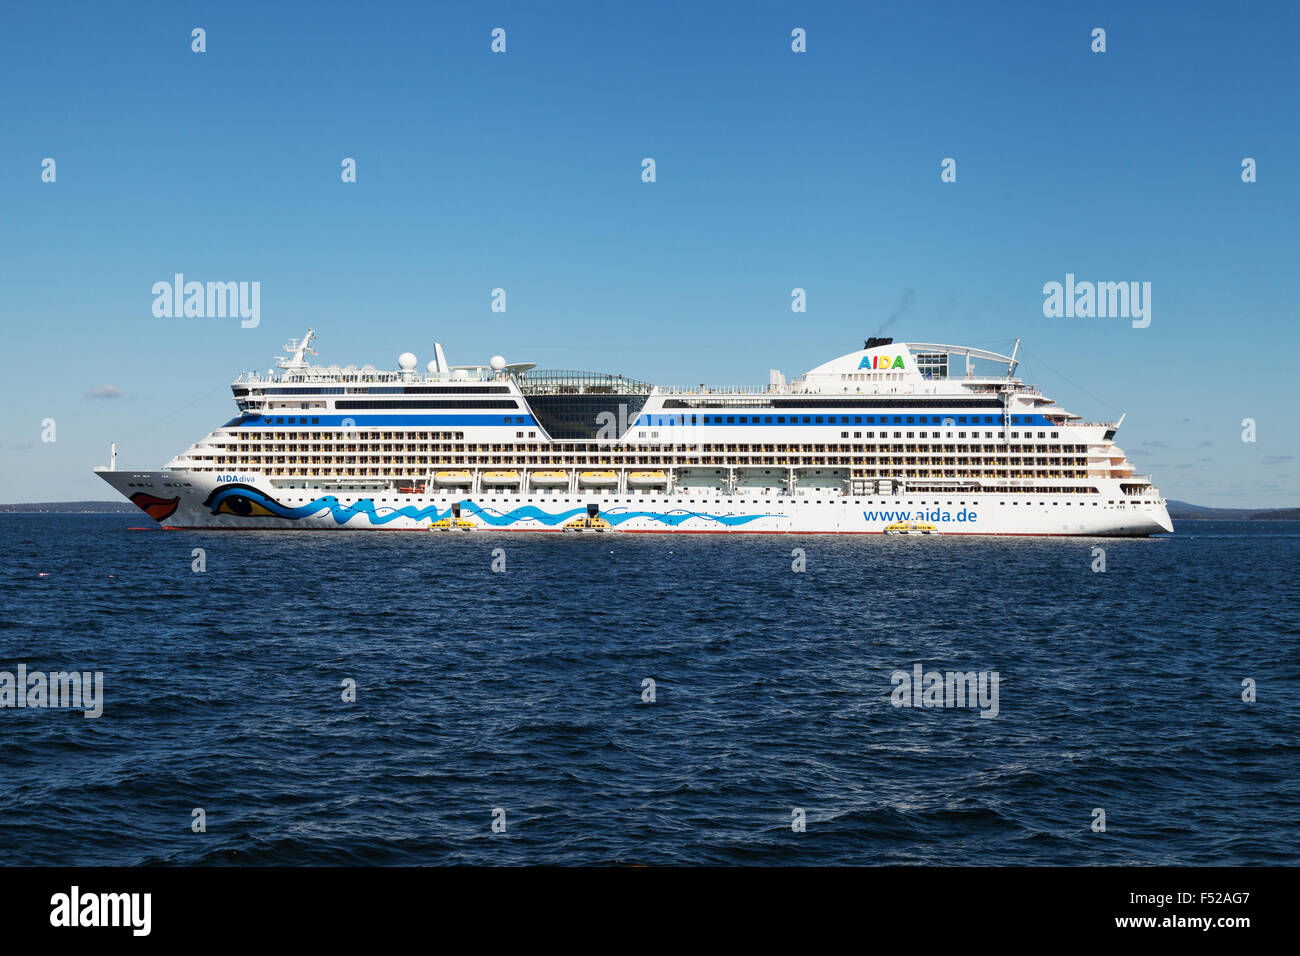 The cruise ship AidaDiva, from the German Aida Cruises cruise line, at anchor in Bar Harbor, Maine USA - Stock Image